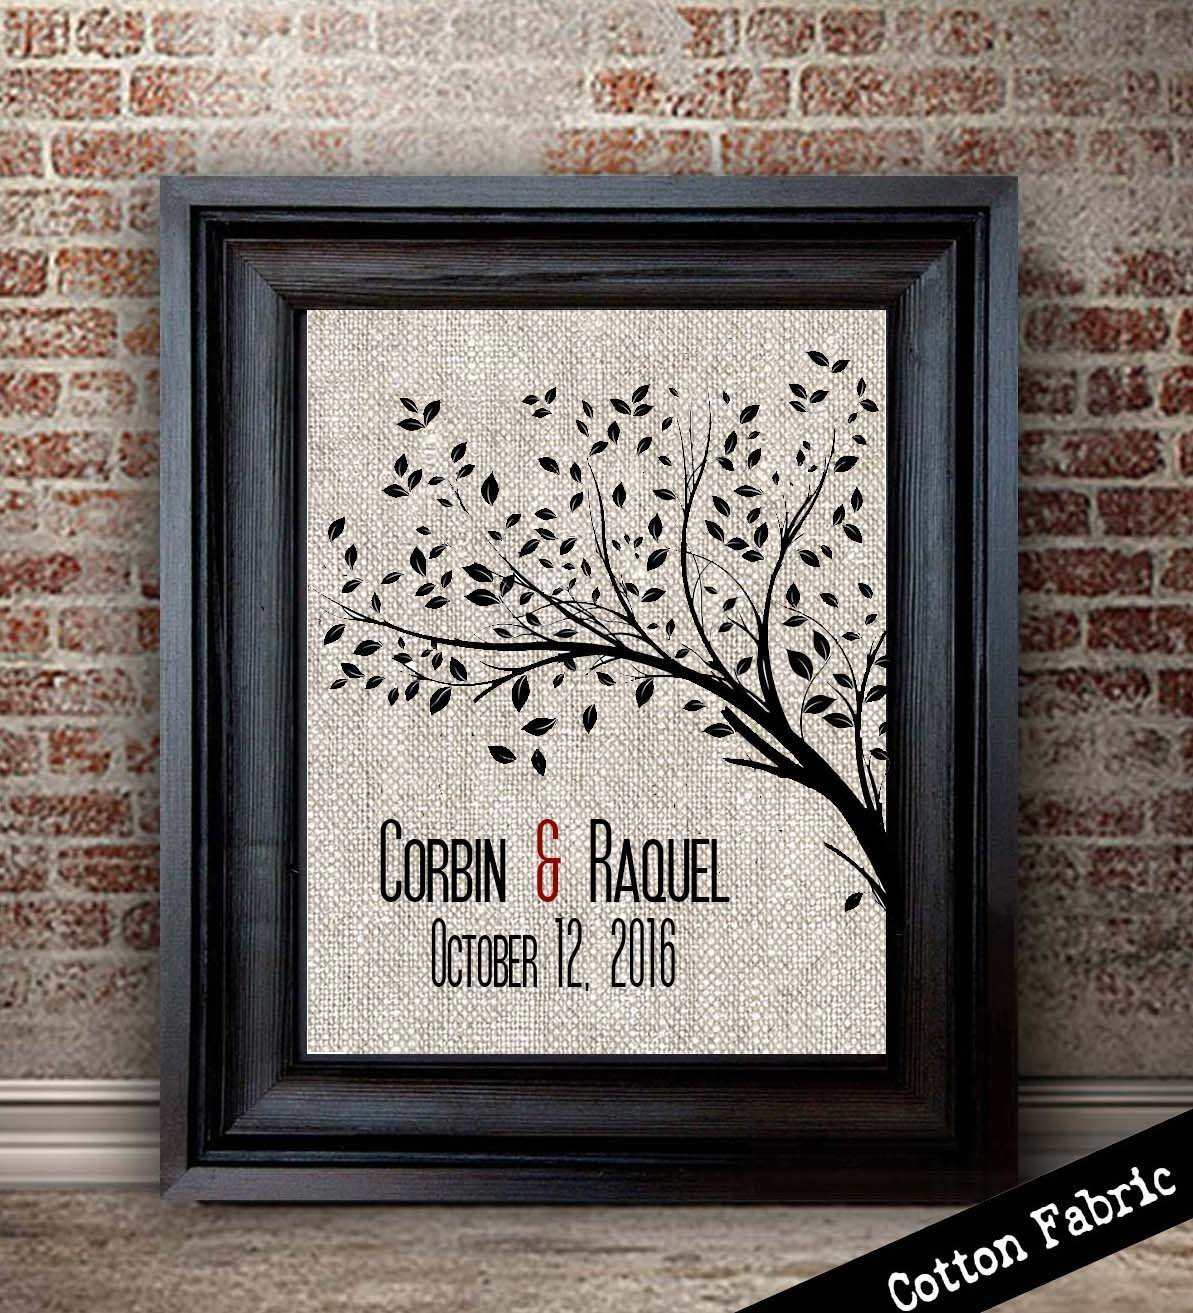 Personalized Cotton Anniversary Gift For Her   2nd Anniversary Gift For Wife   2 Year Anniversary Gifts for Women   Cotton Fabric Print   Tree Print & Amazon.com: Personalized Cotton Anniversary Gift For Her   2nd ...